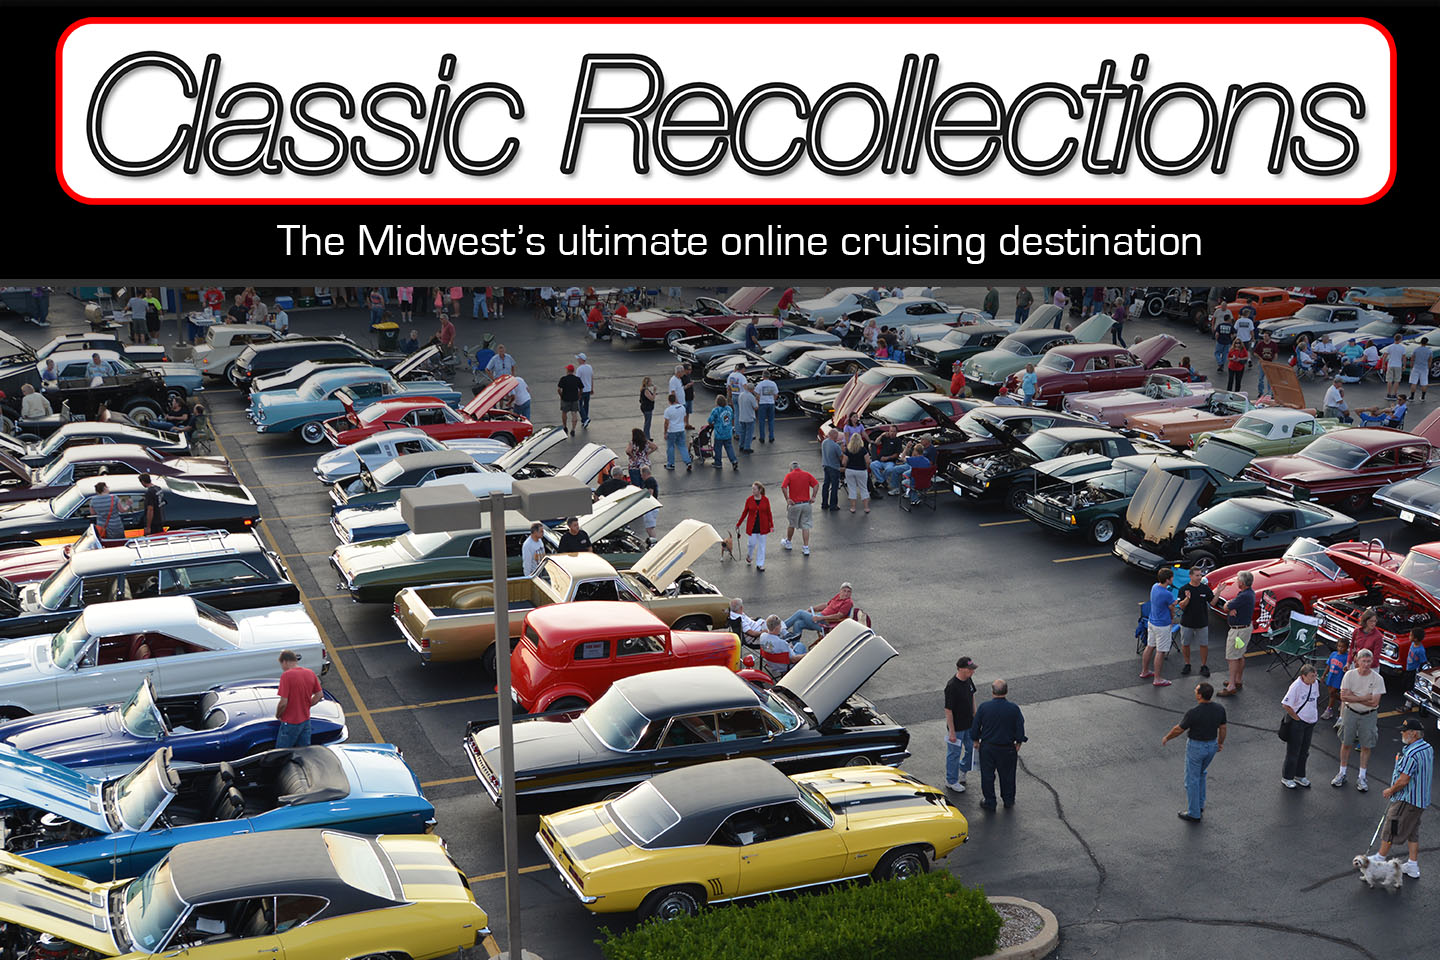 Click here for coverage of the Chicagoland classic car hobby!